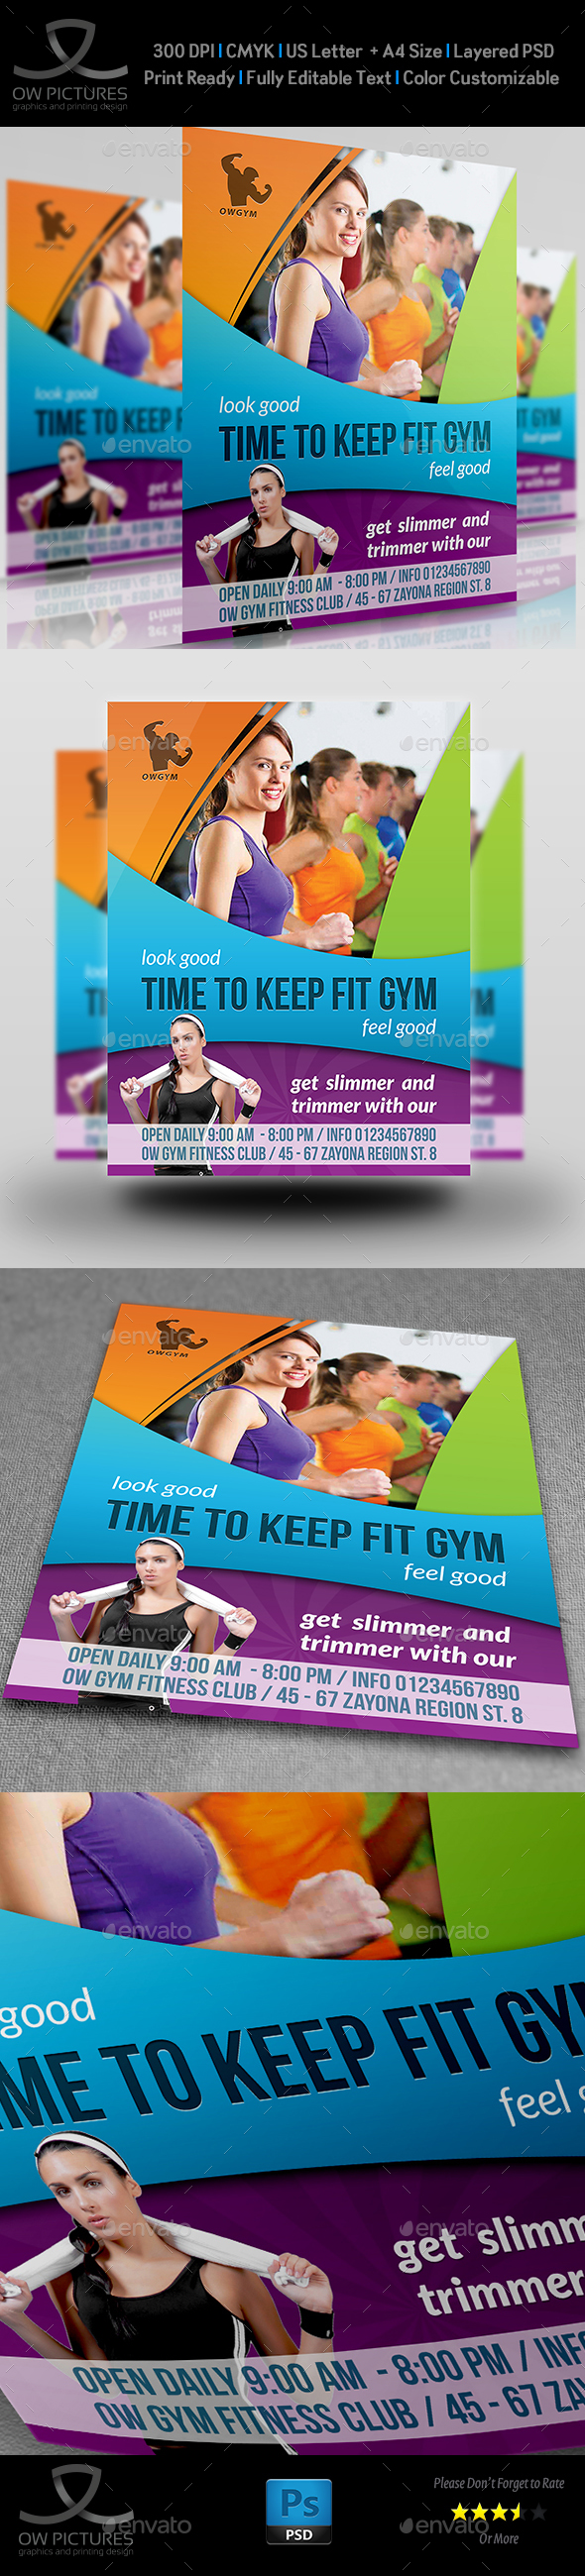 Fitness GYM Flyer Template Vol.3